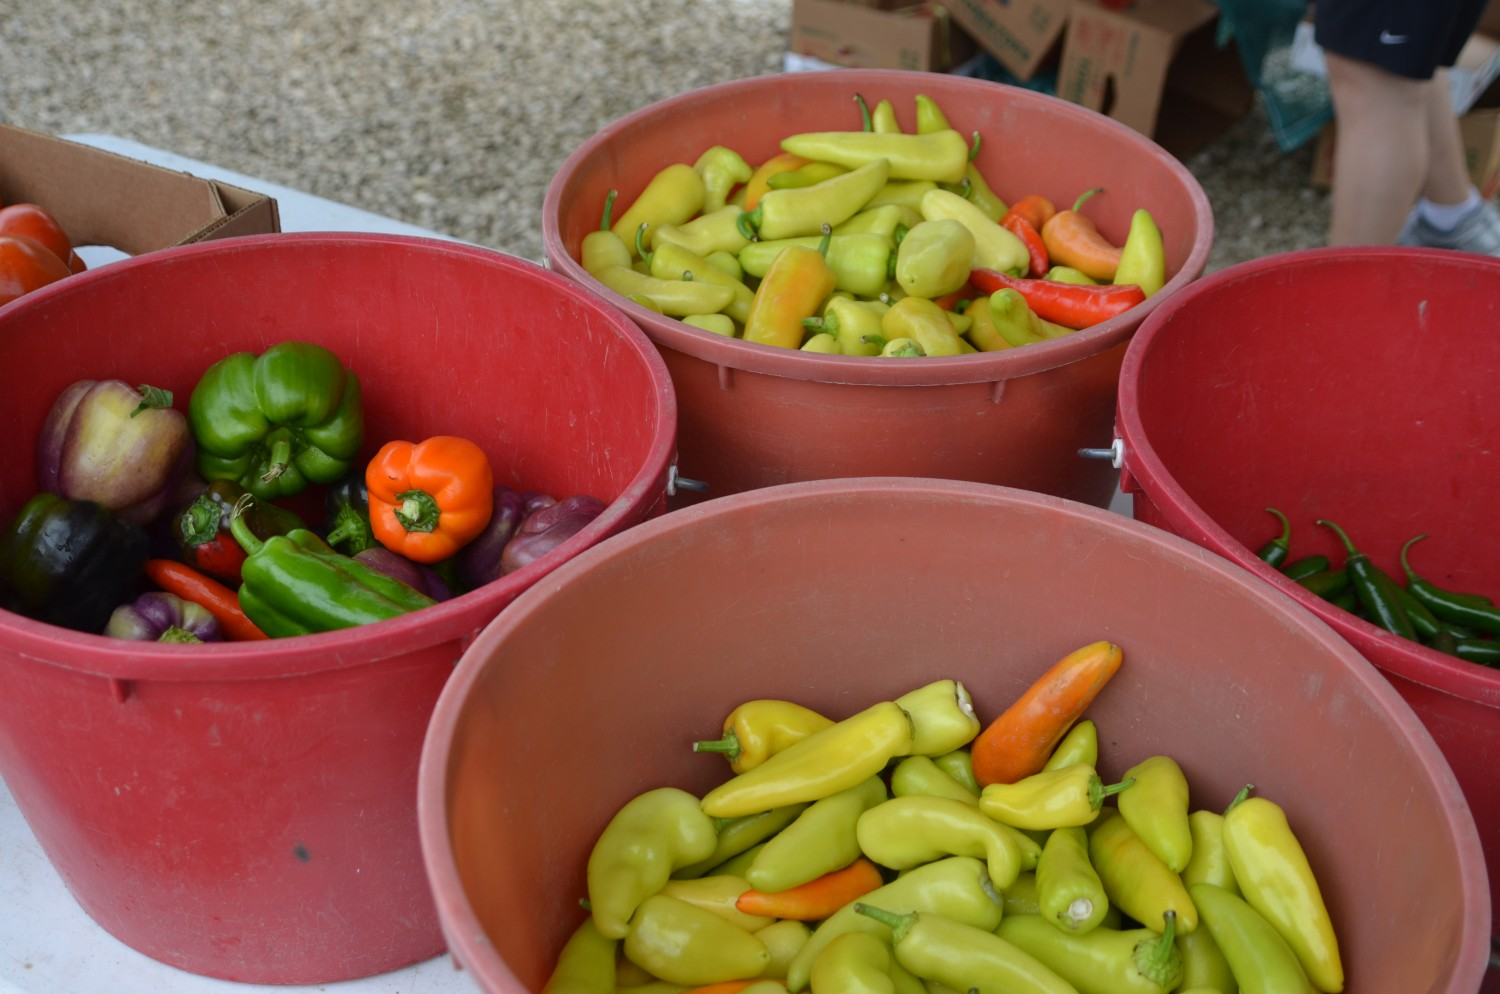 Four Buckets of Four Peppers